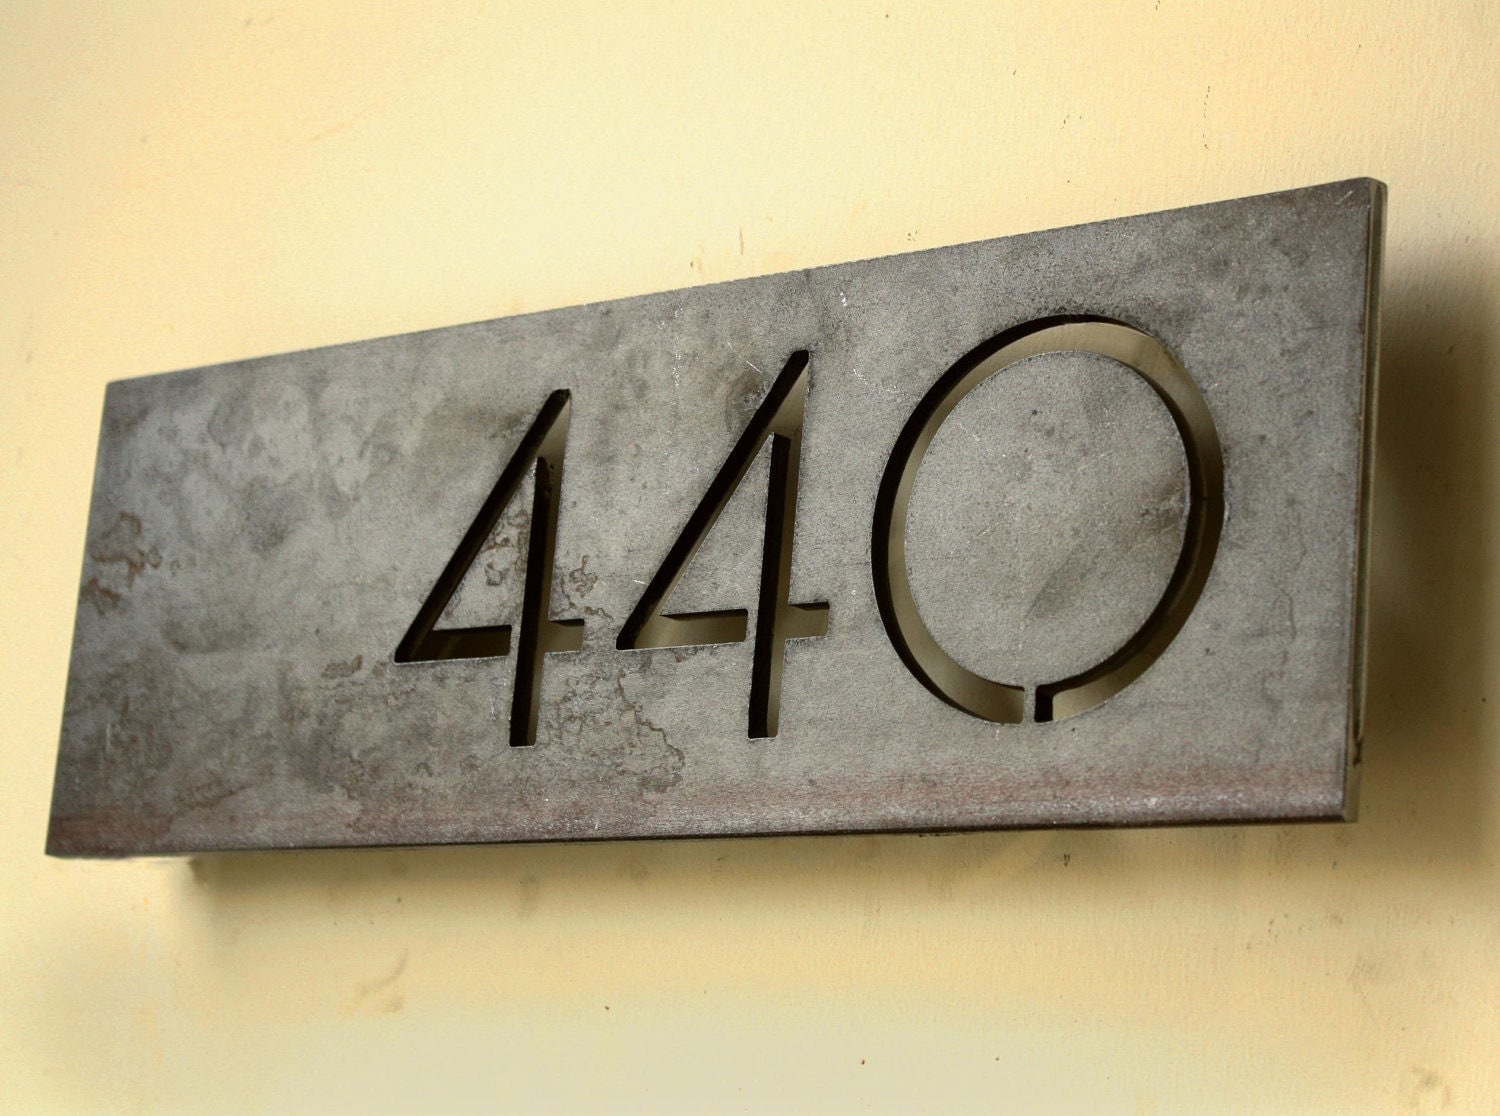 Modern address numbers for houses